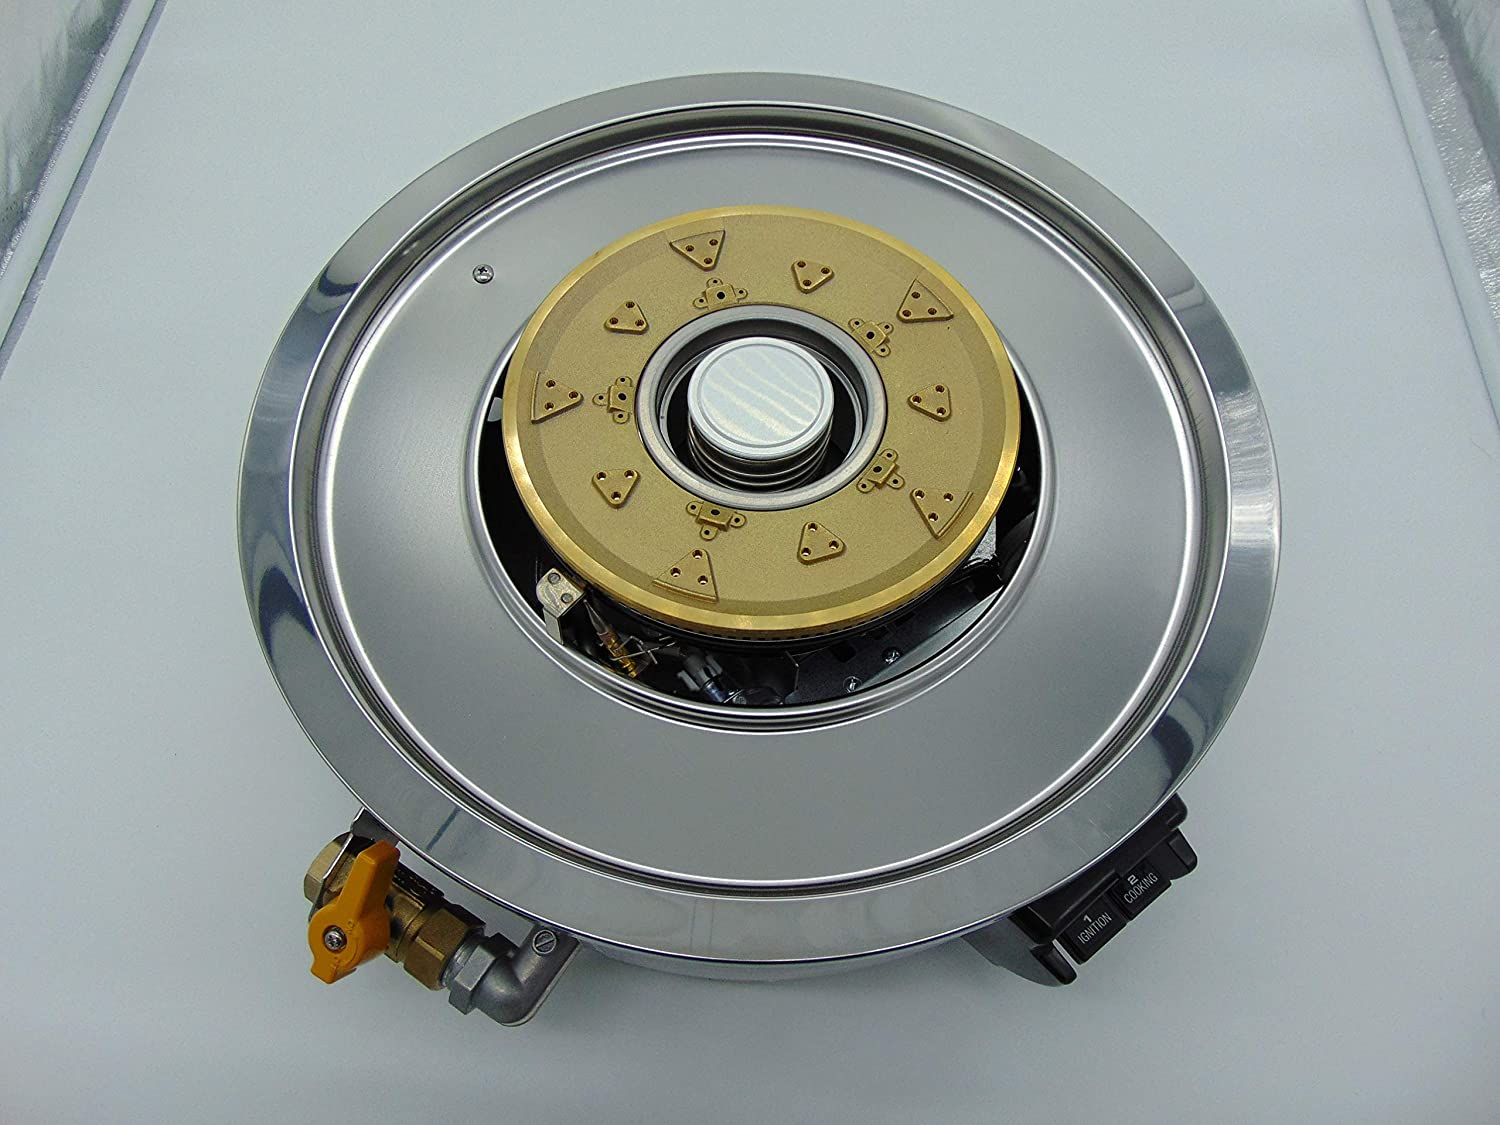 Gas Rice Cooker Burner Base Only Model: RER-55AS-N Type Of Gas: Natural Gas